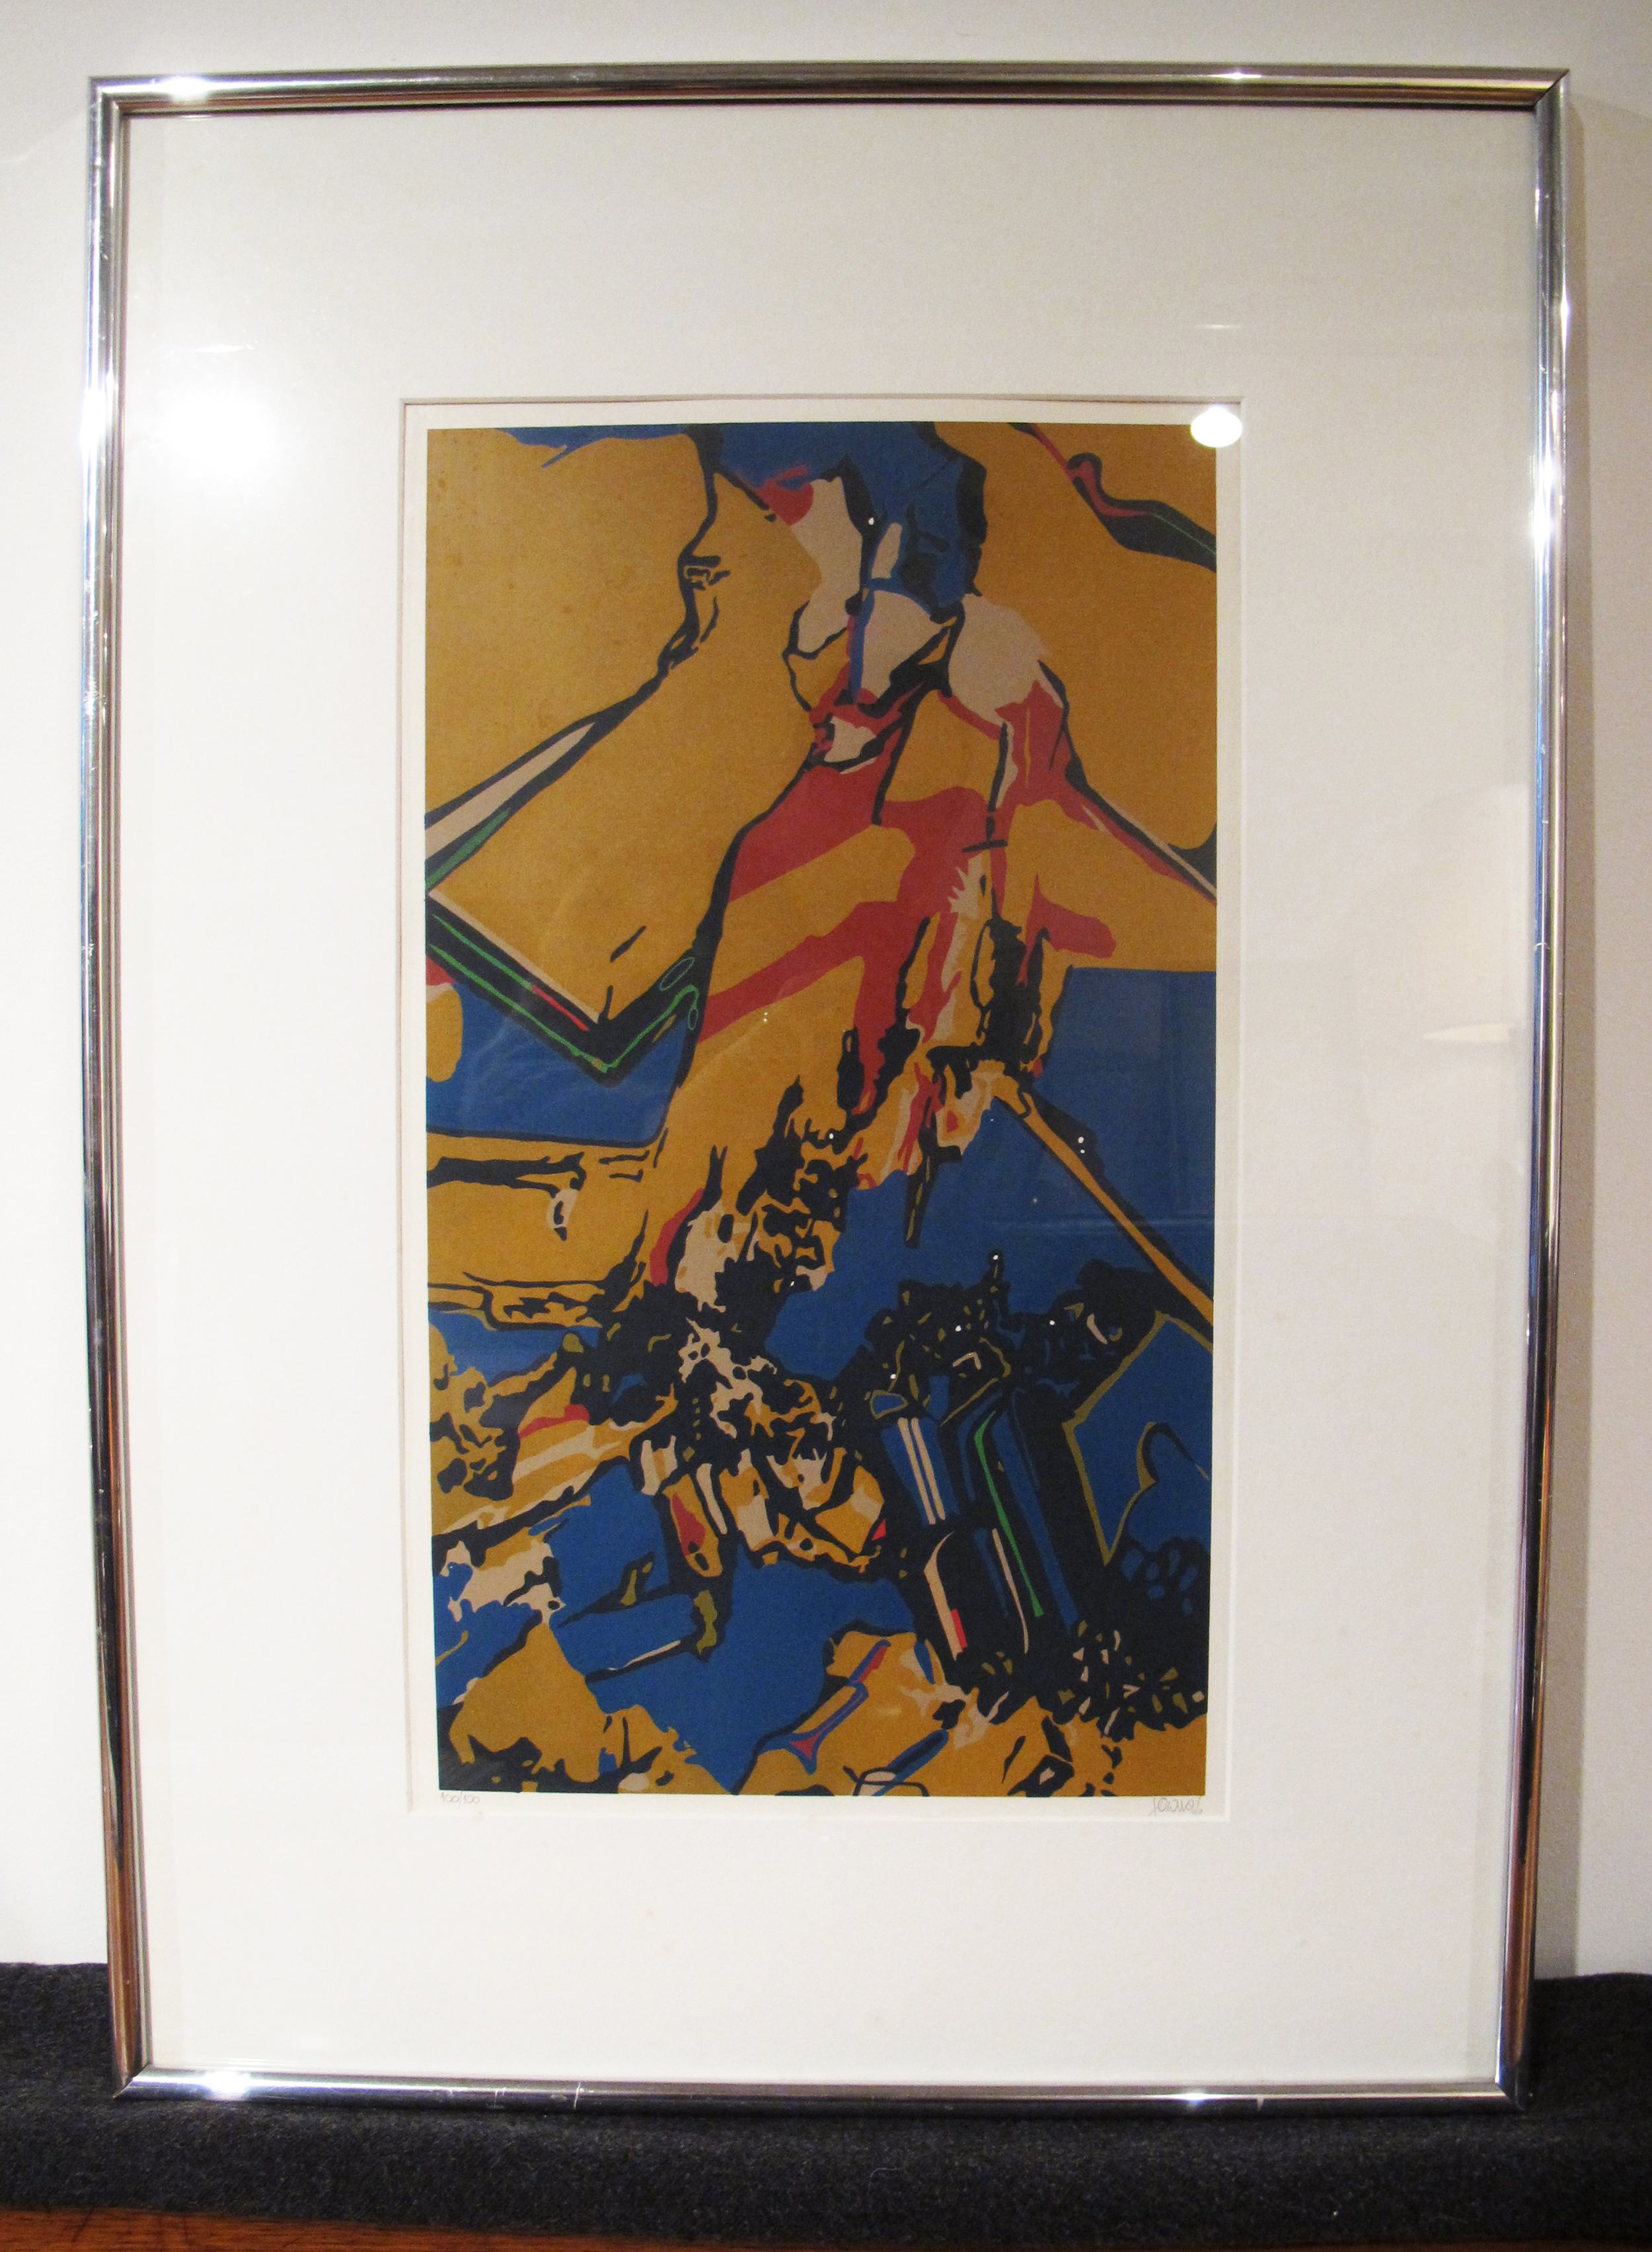 COLORFUL SIGNED AND NUMBERED PSYCHEDELIC POP-ART SILKSCREEN PRINT